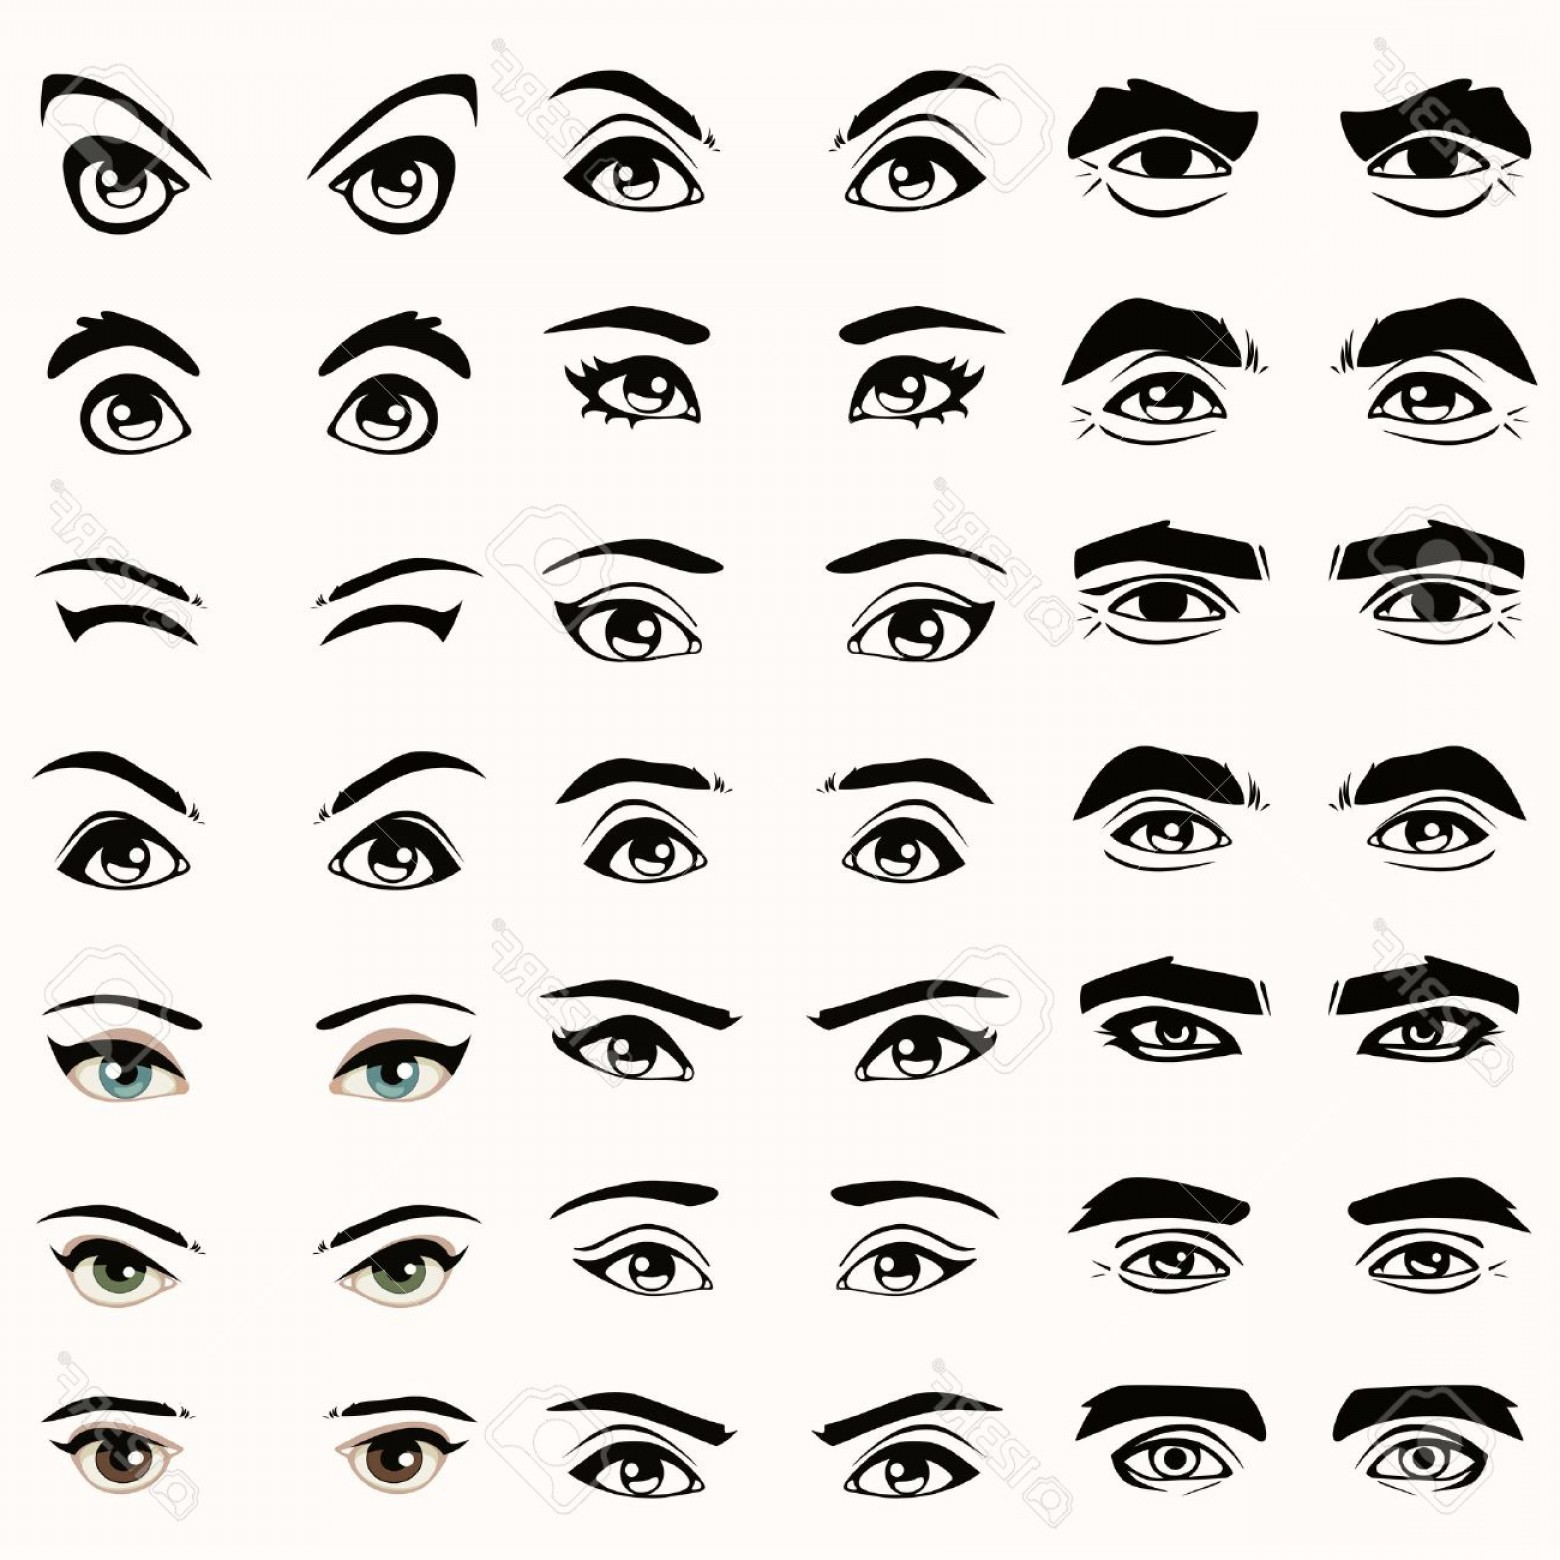 Male Eyes Vector Graphic: Photofemale And Male Vector Eyes And Eyebrows Silhouette